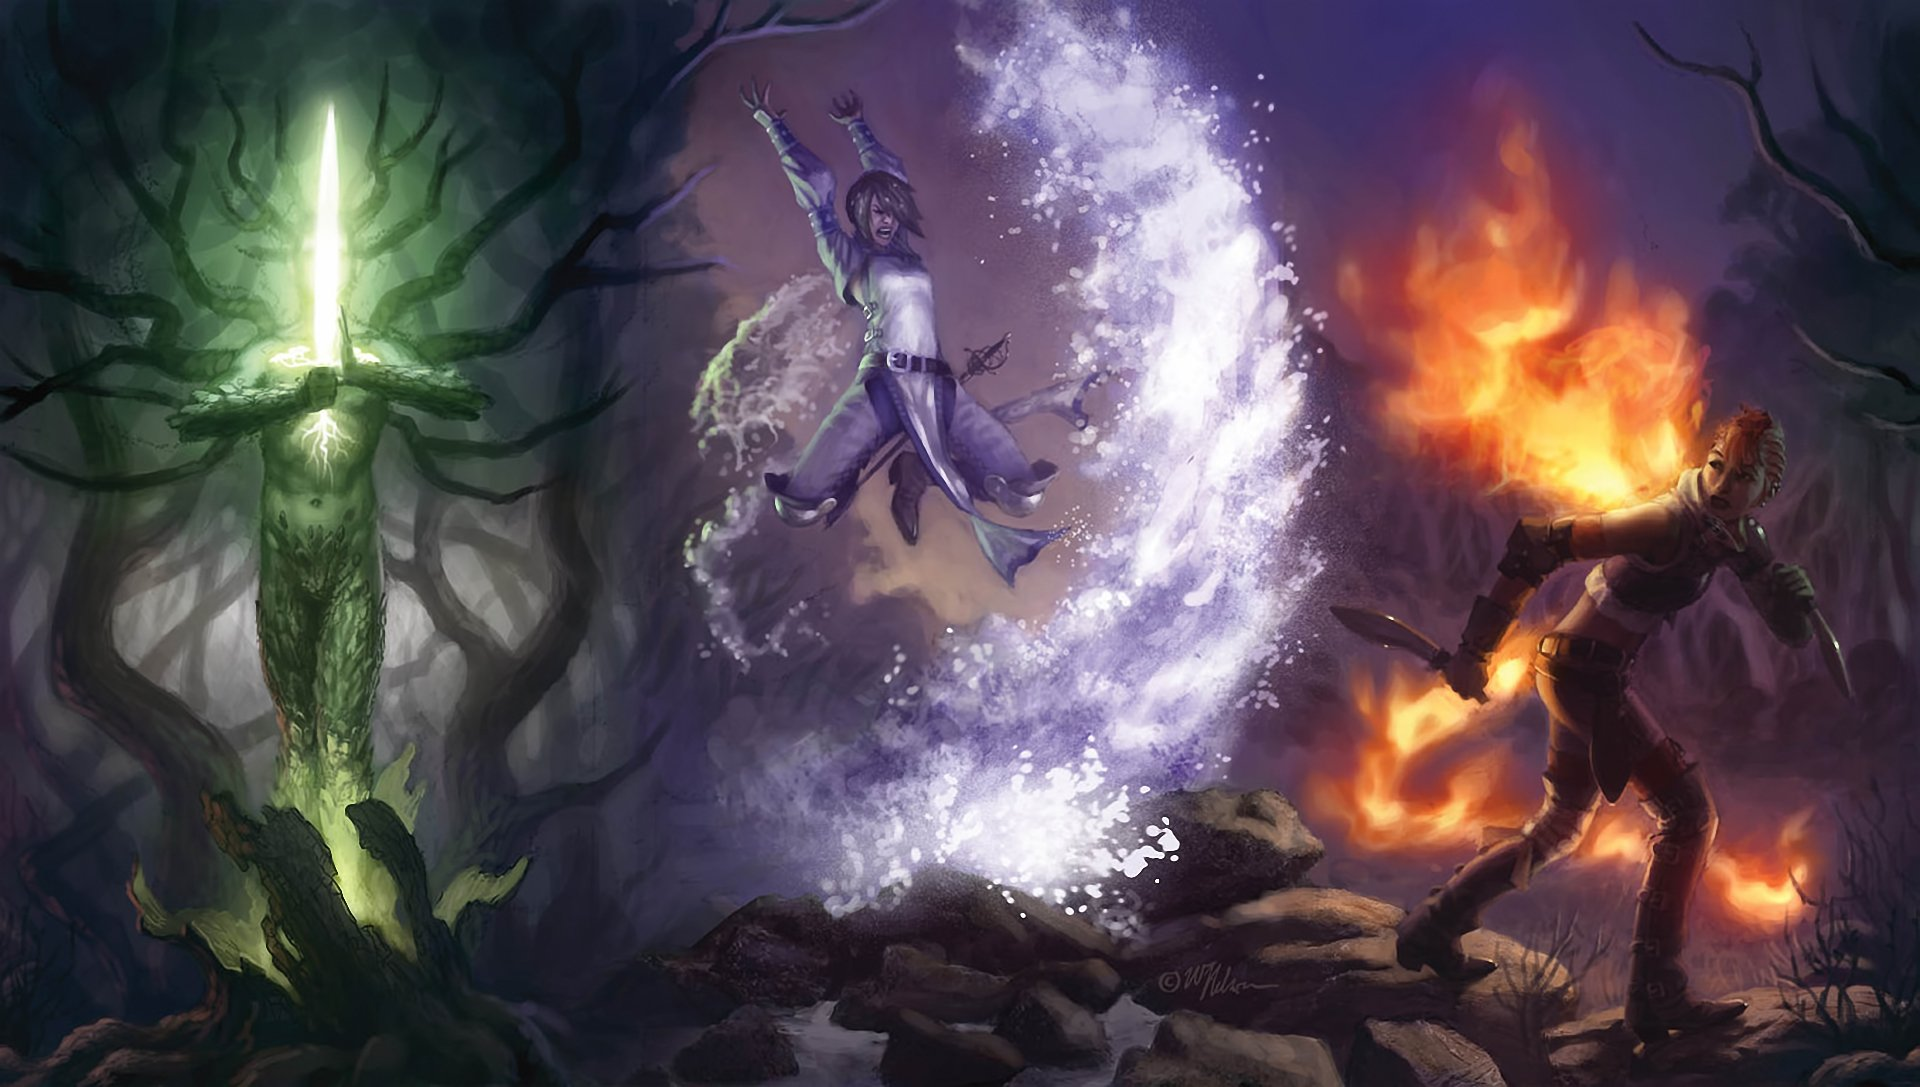 Fantasy Wizard Background 1 Hd Wallpapers: Comicon Full HD Wallpaper And Background Image